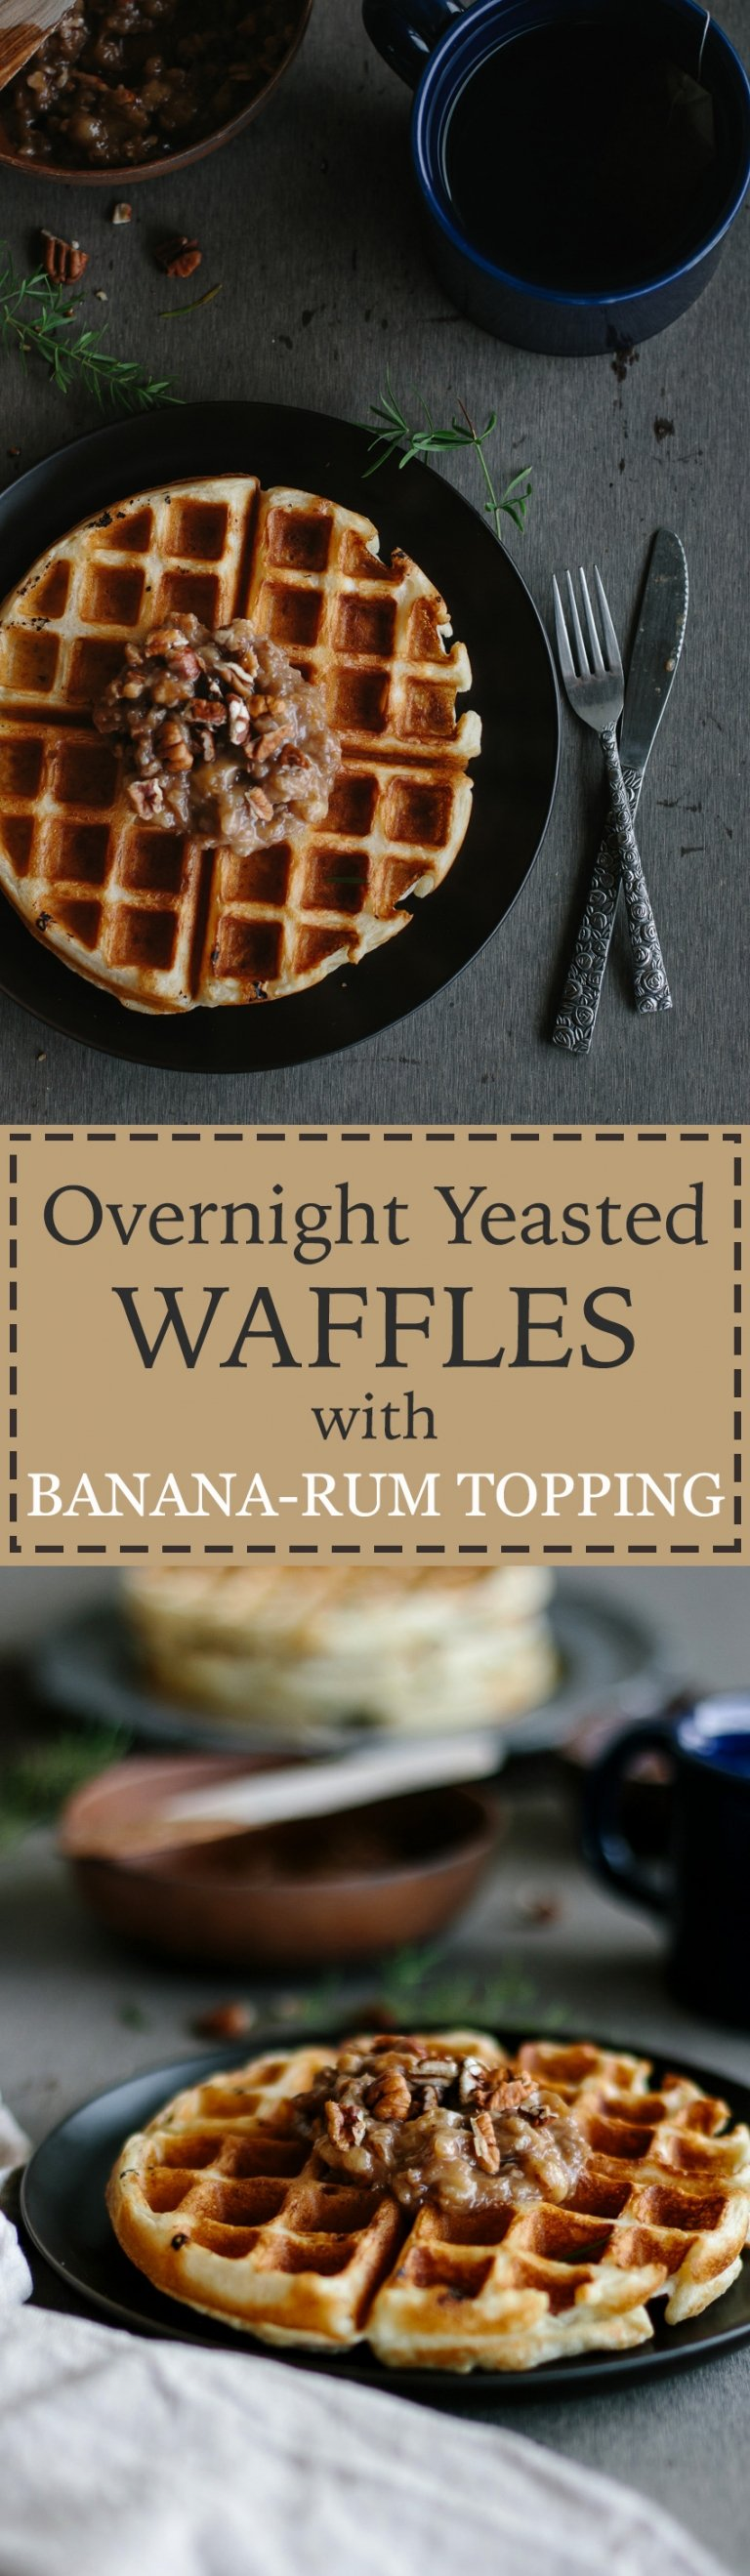 Overnight Yeasted Waffles With Banana Rum Topping